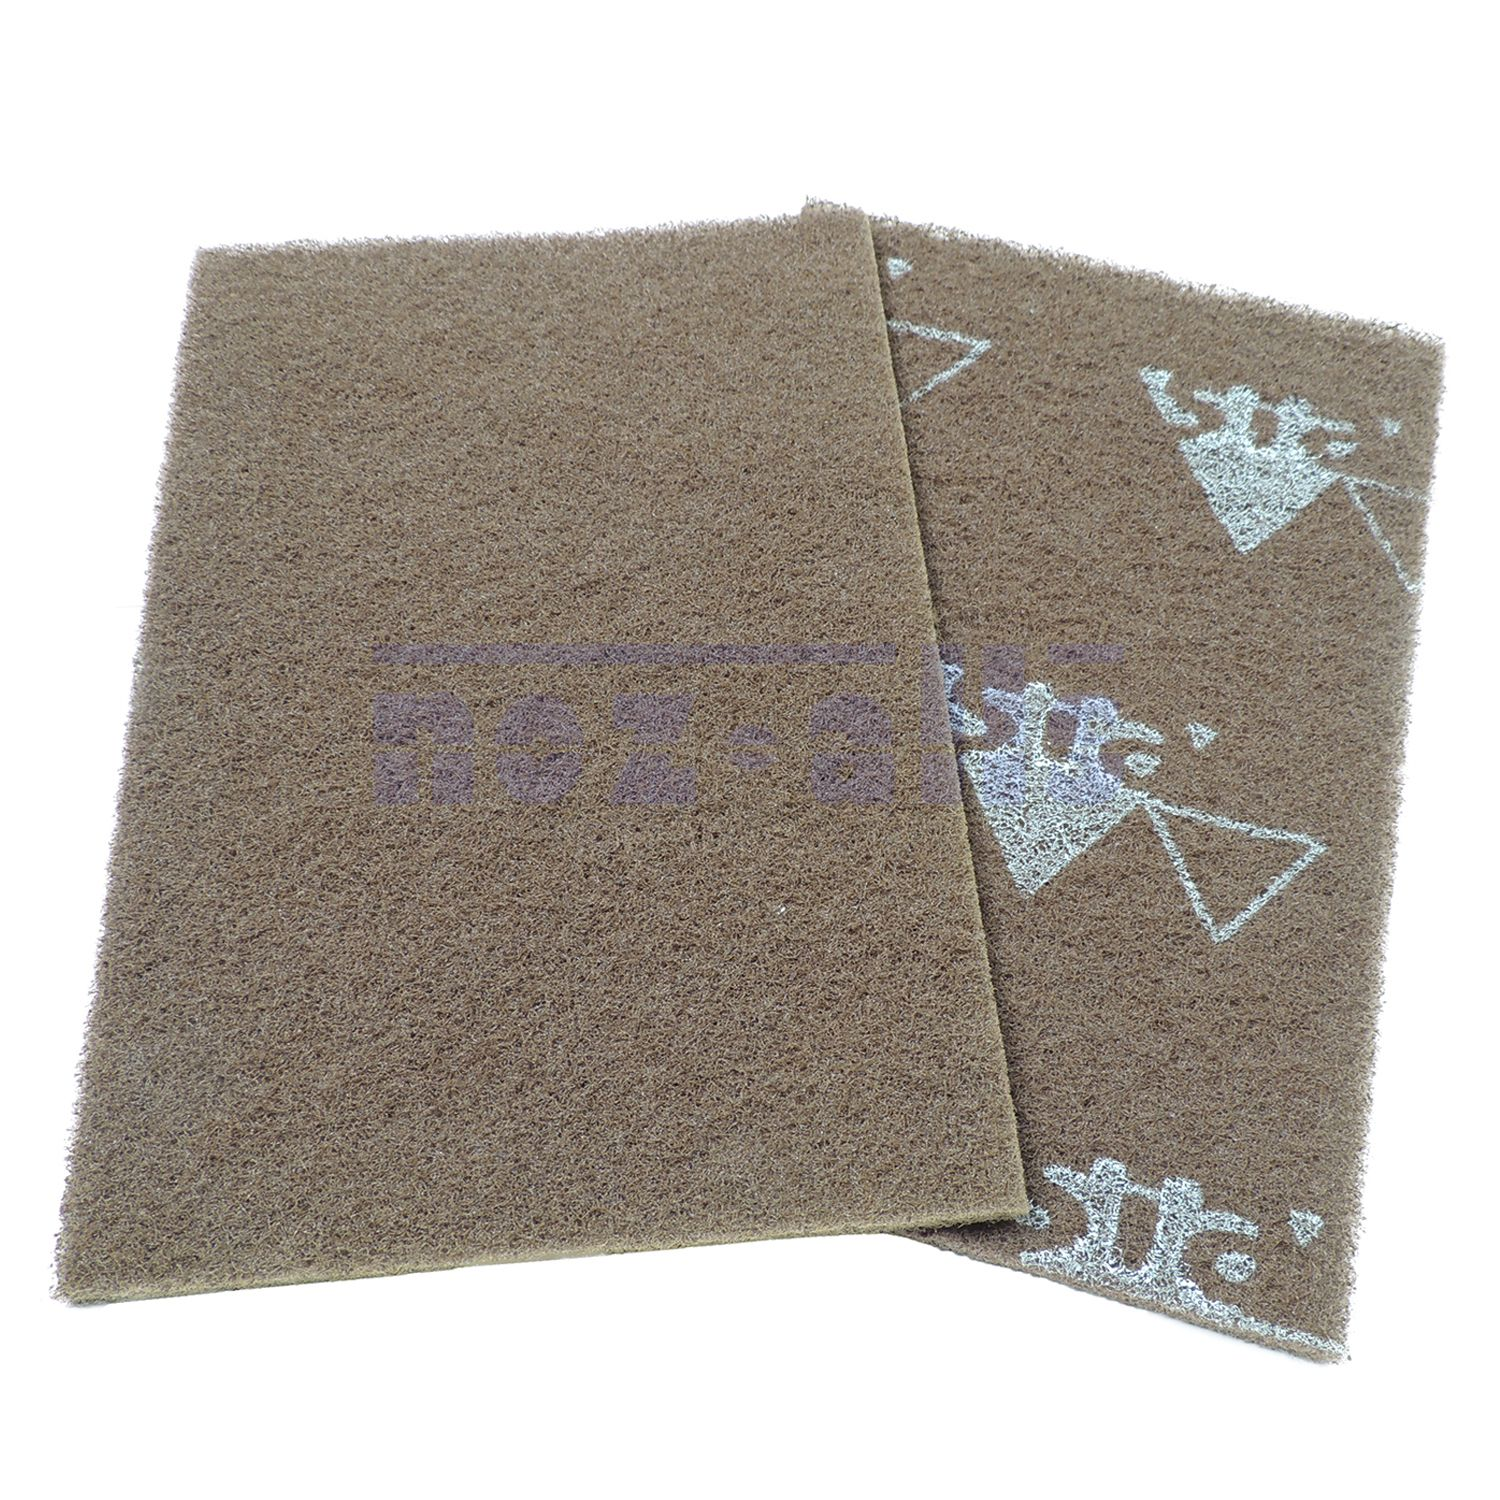 Sia 4132.9840.2922.52 - Handpad 152x229mm Brown G80 Extra Cut